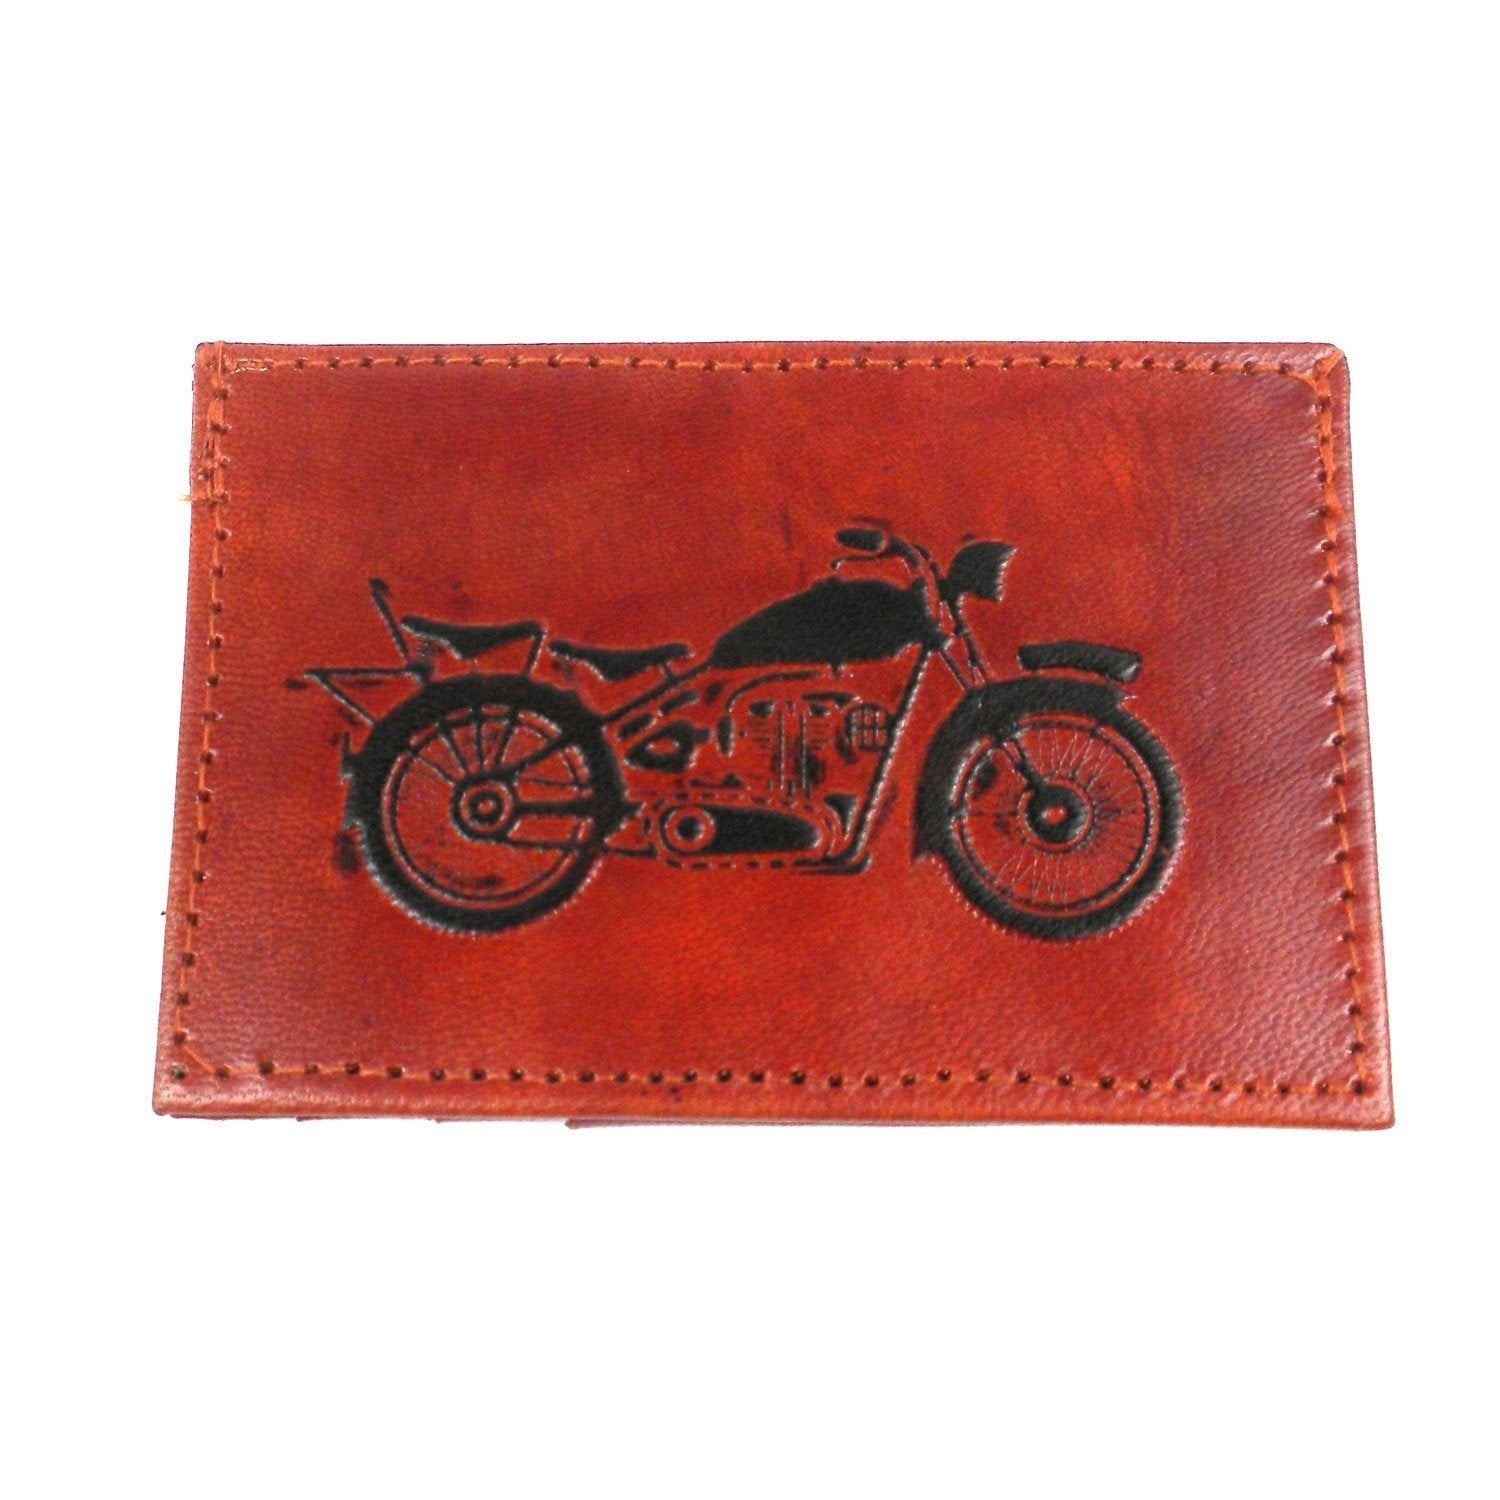 Sustainable Leather Wallet - Open Road  (W)